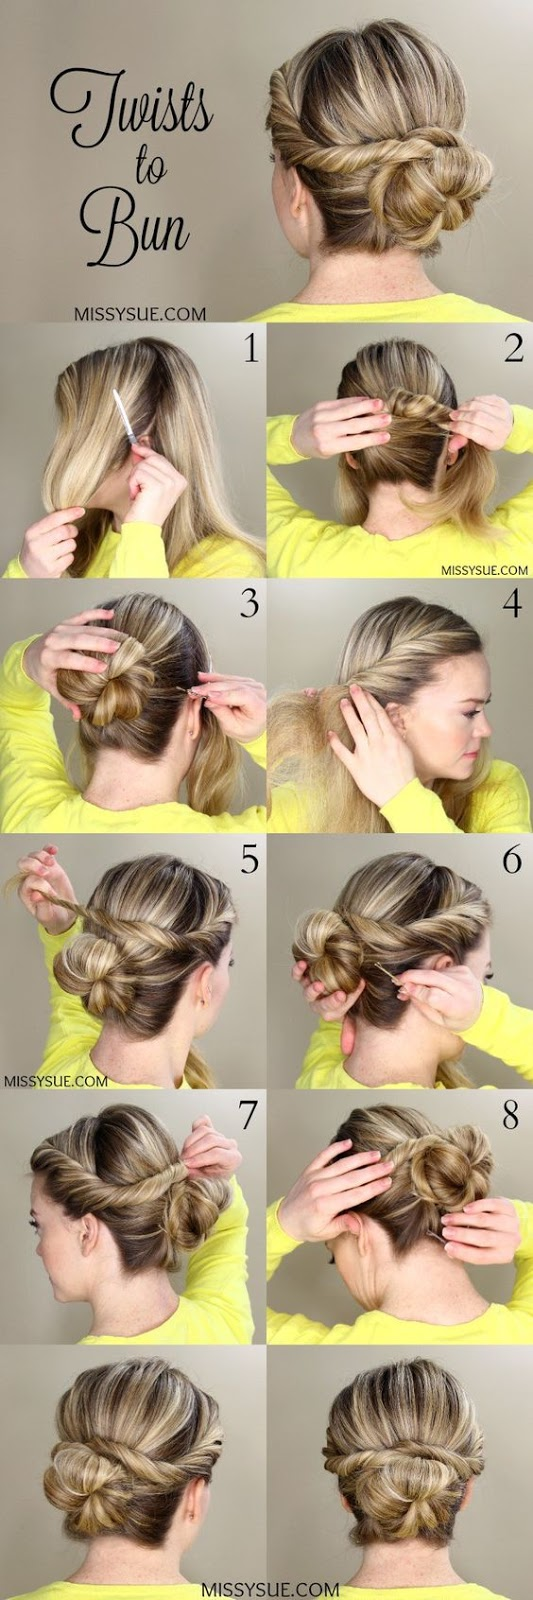 Twists to Bun Easy Women's DIY Hairstyles